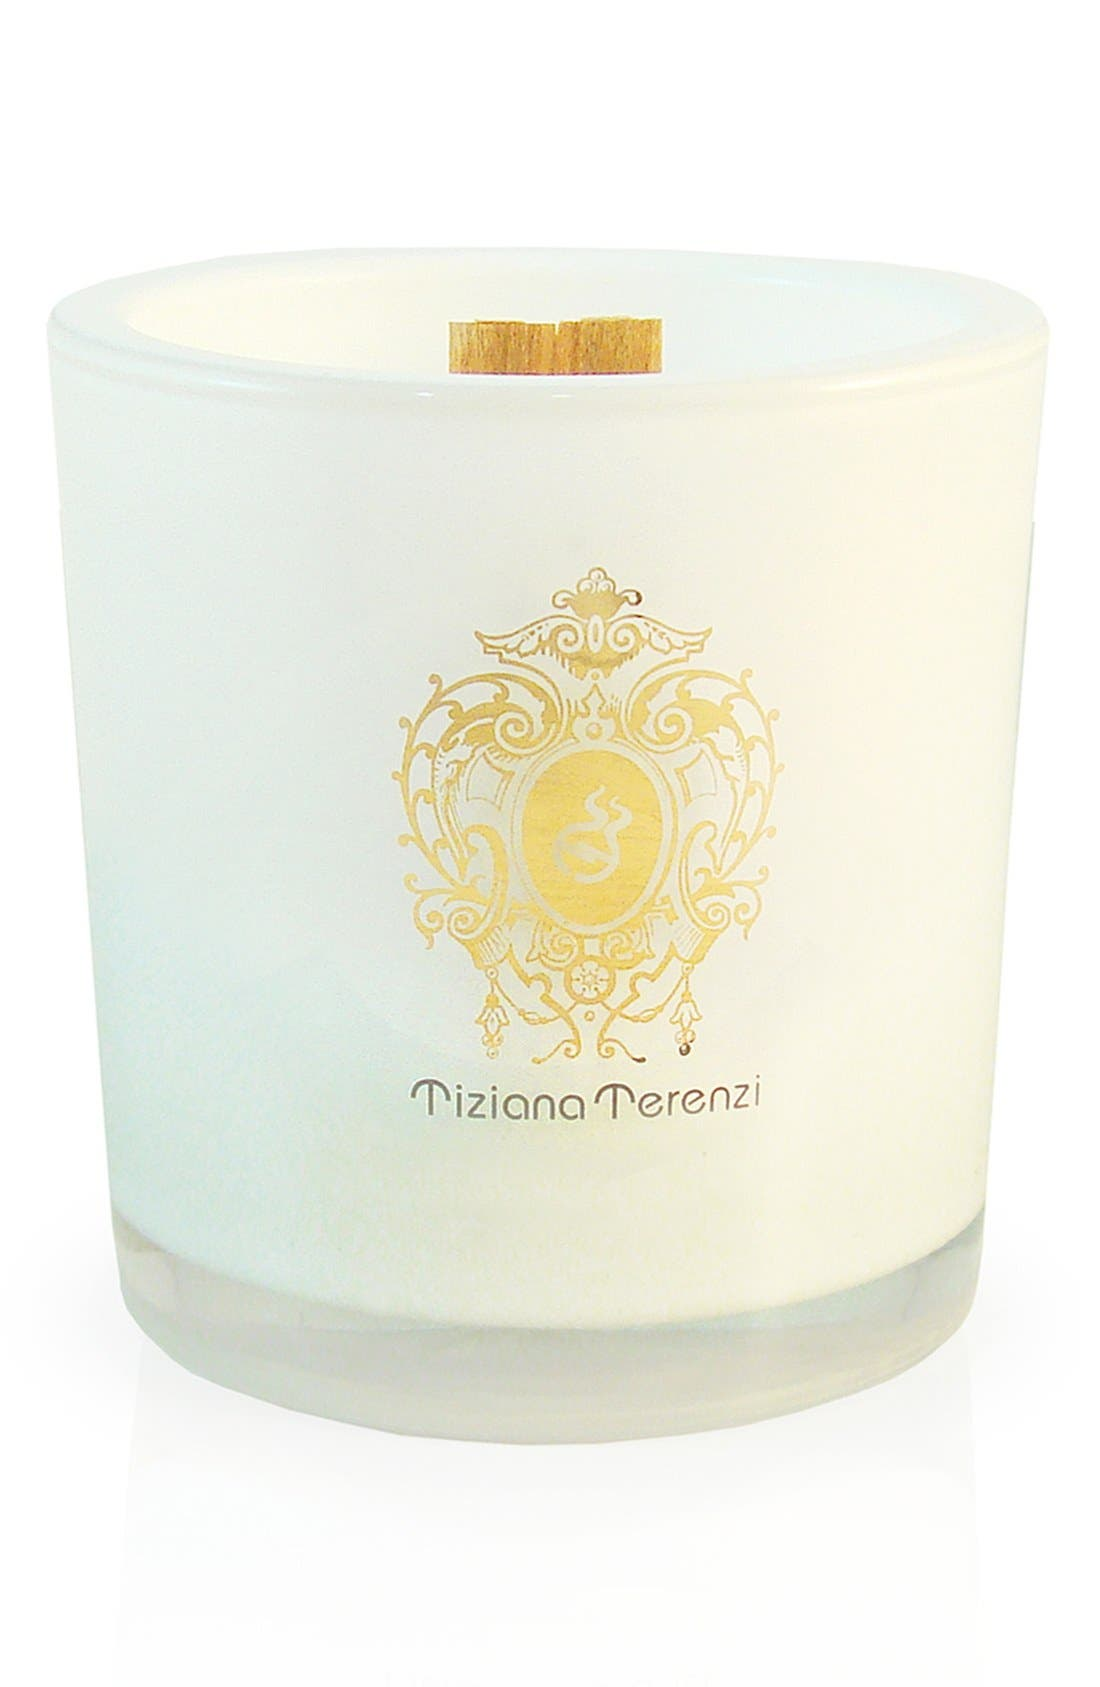 'Lillipur' Two-Wick Foco Candle,                             Main thumbnail 1, color,                             NO COLOR